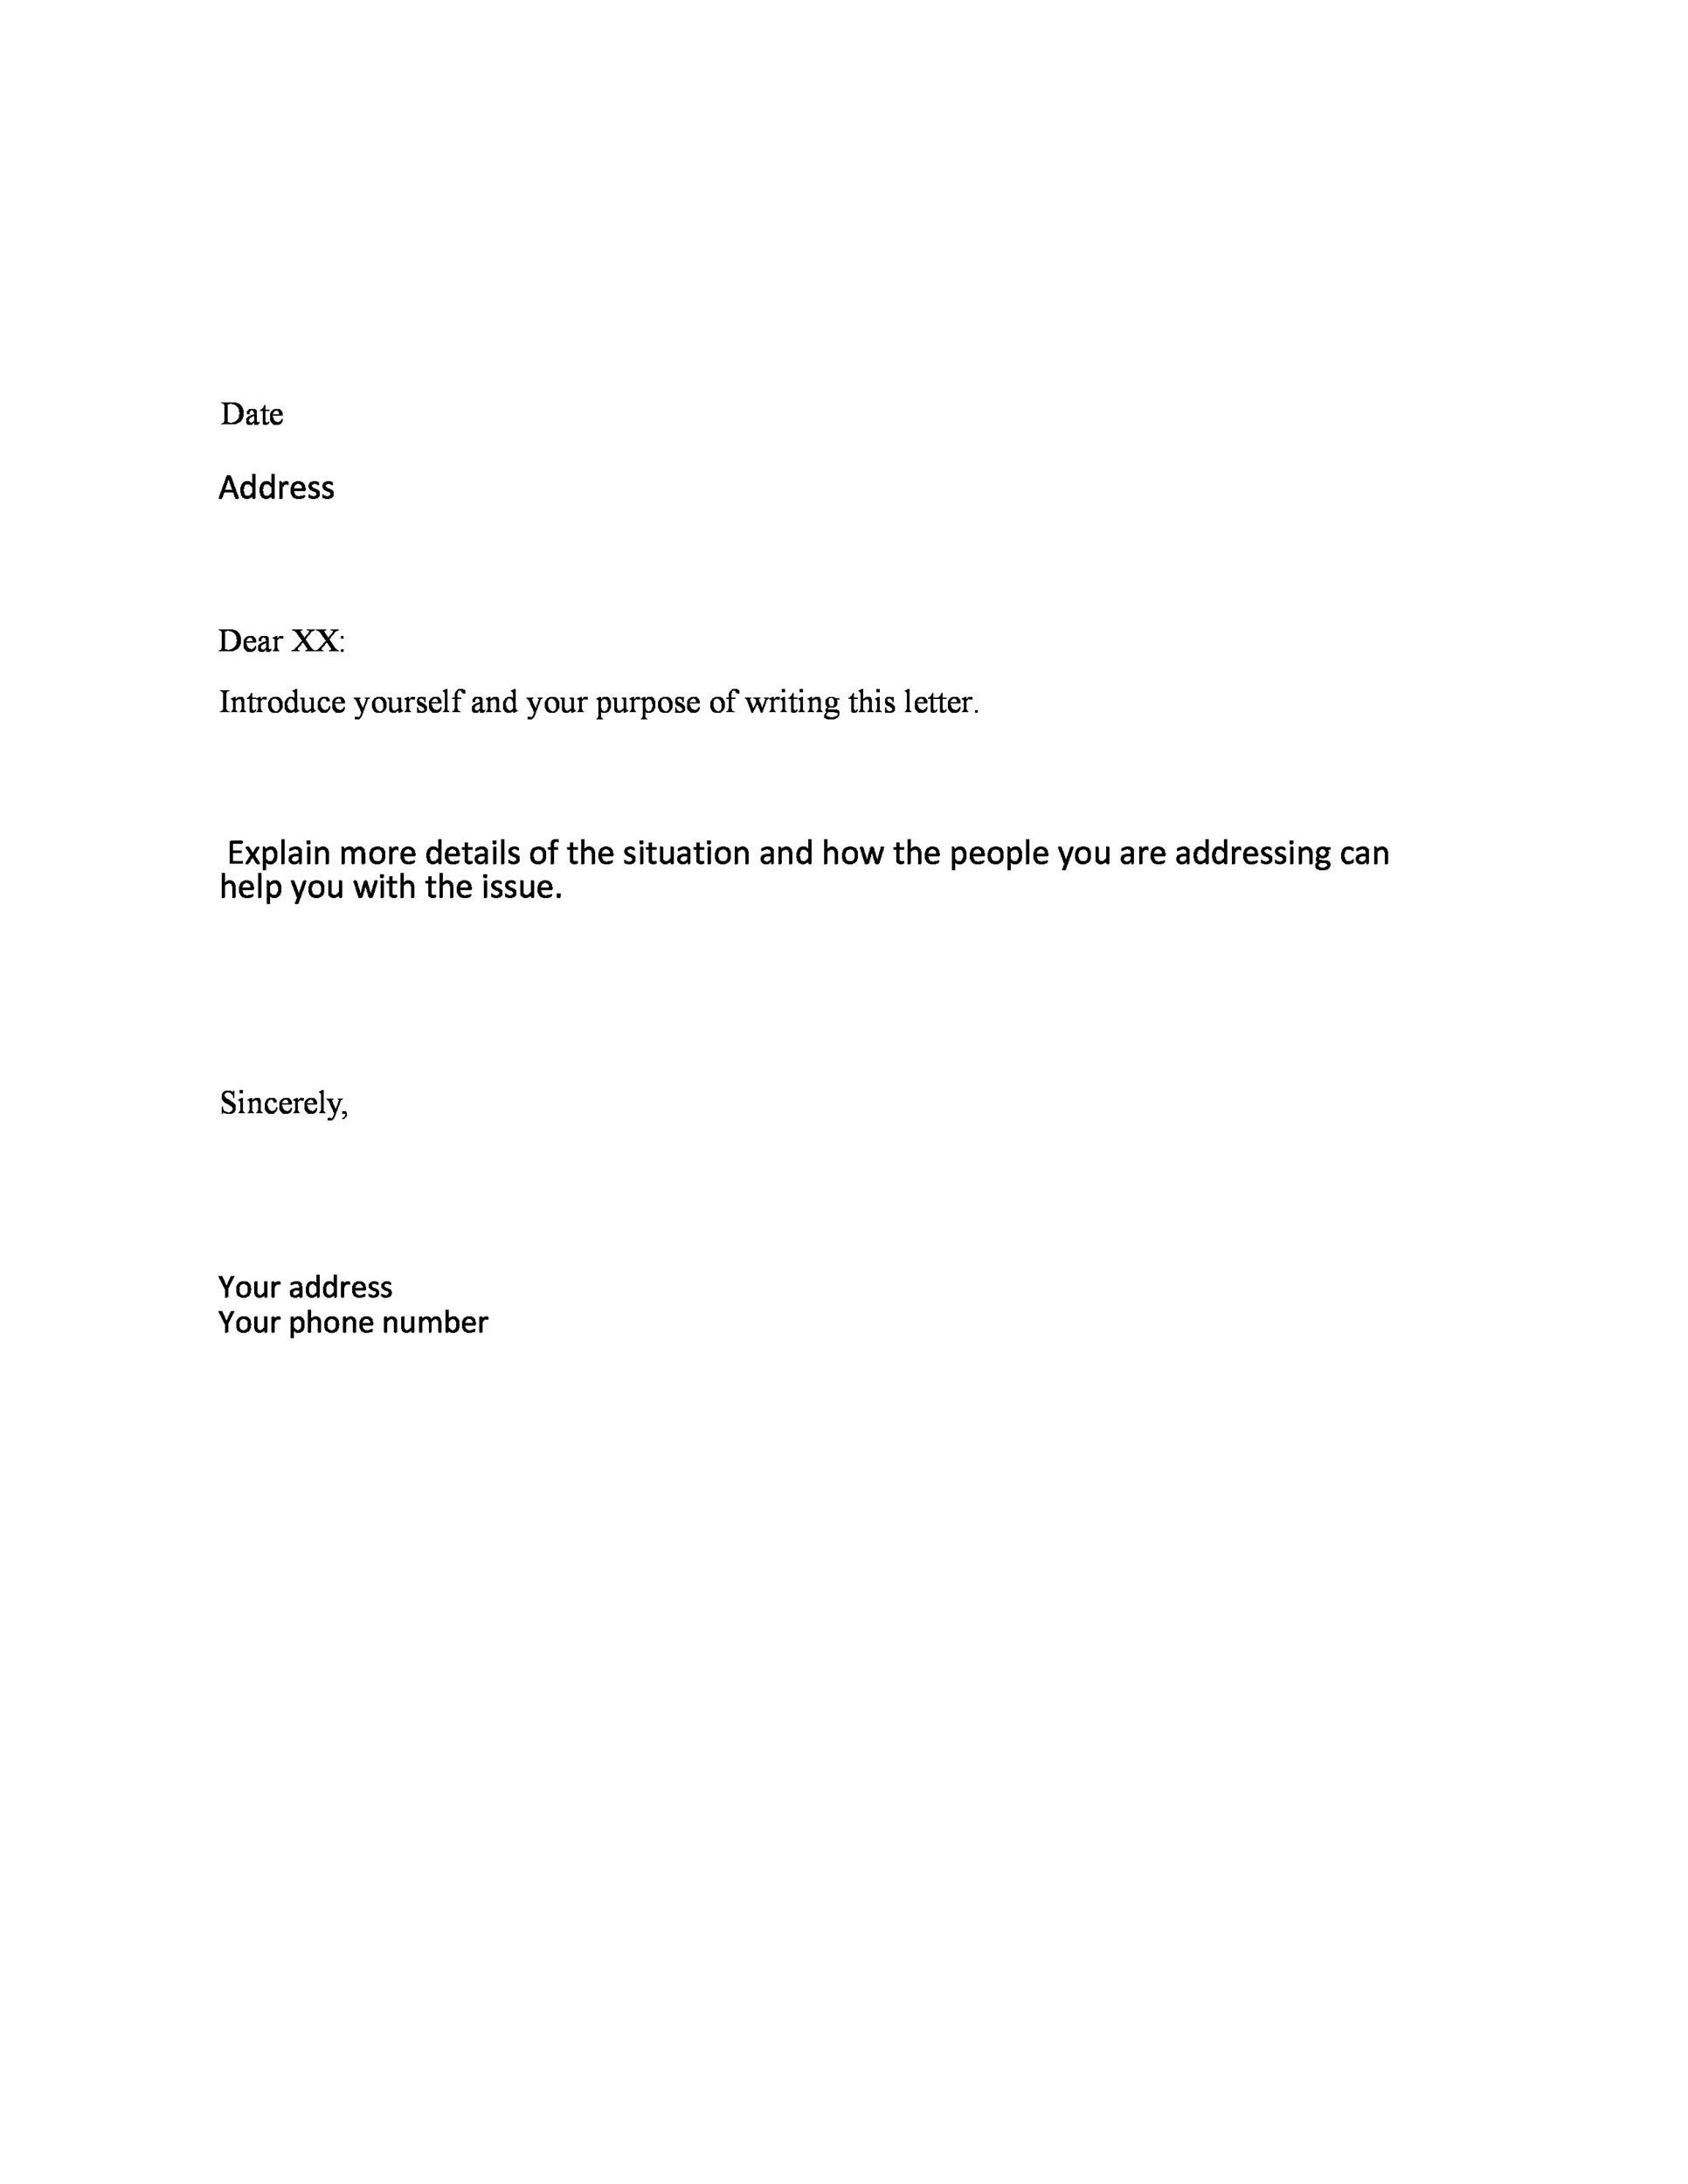 Business Letter With Address formal business email format sample – Formal Business Letter Format